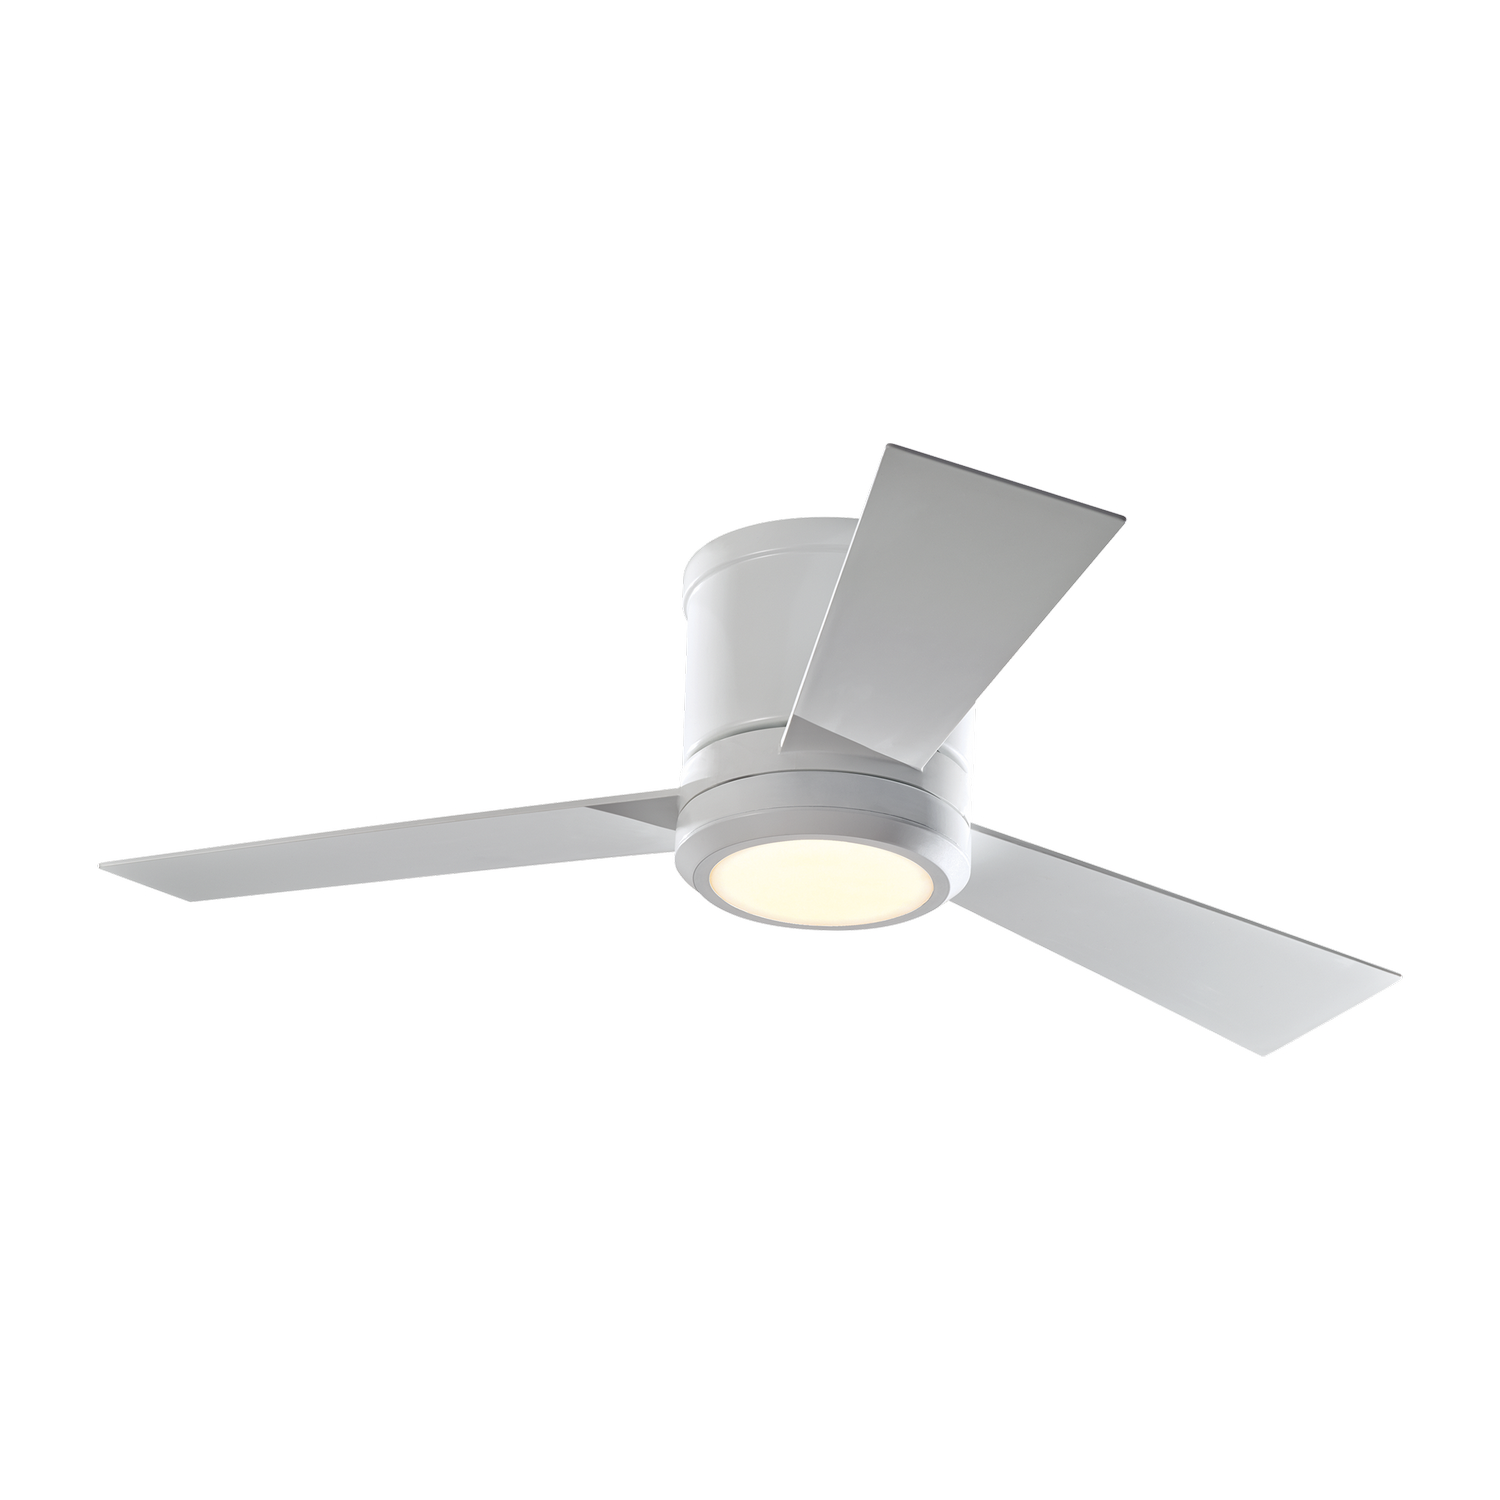 42 inchCeiling Fan from the Clarity II collection by Monte Carlo 3CLYR42RZWD V1